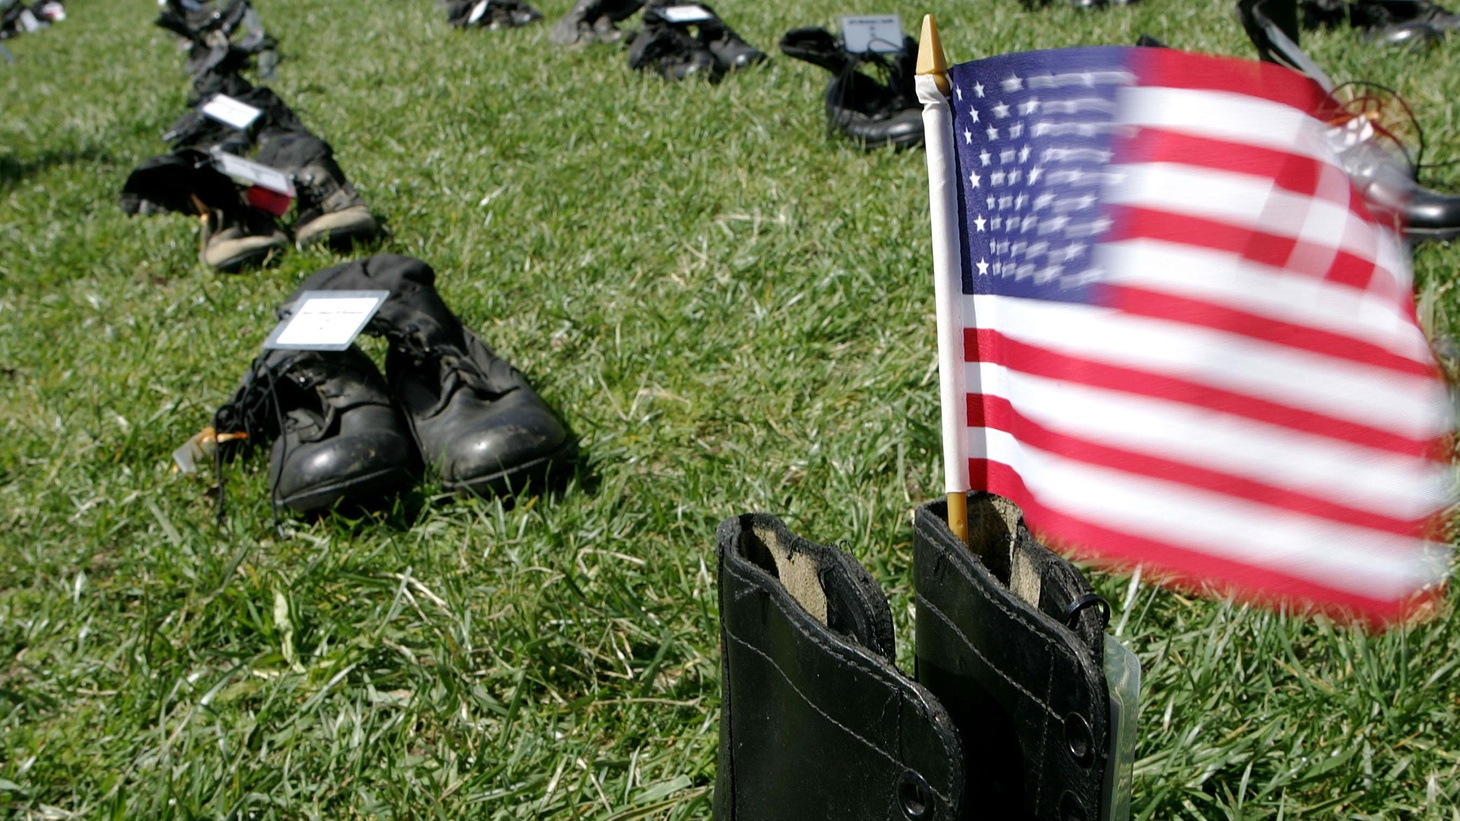 Suicides among America's soldiers and veterans are outpacing combat casualties -- and are increasing. Family survivors, the Pentagon and others are searching for answers.